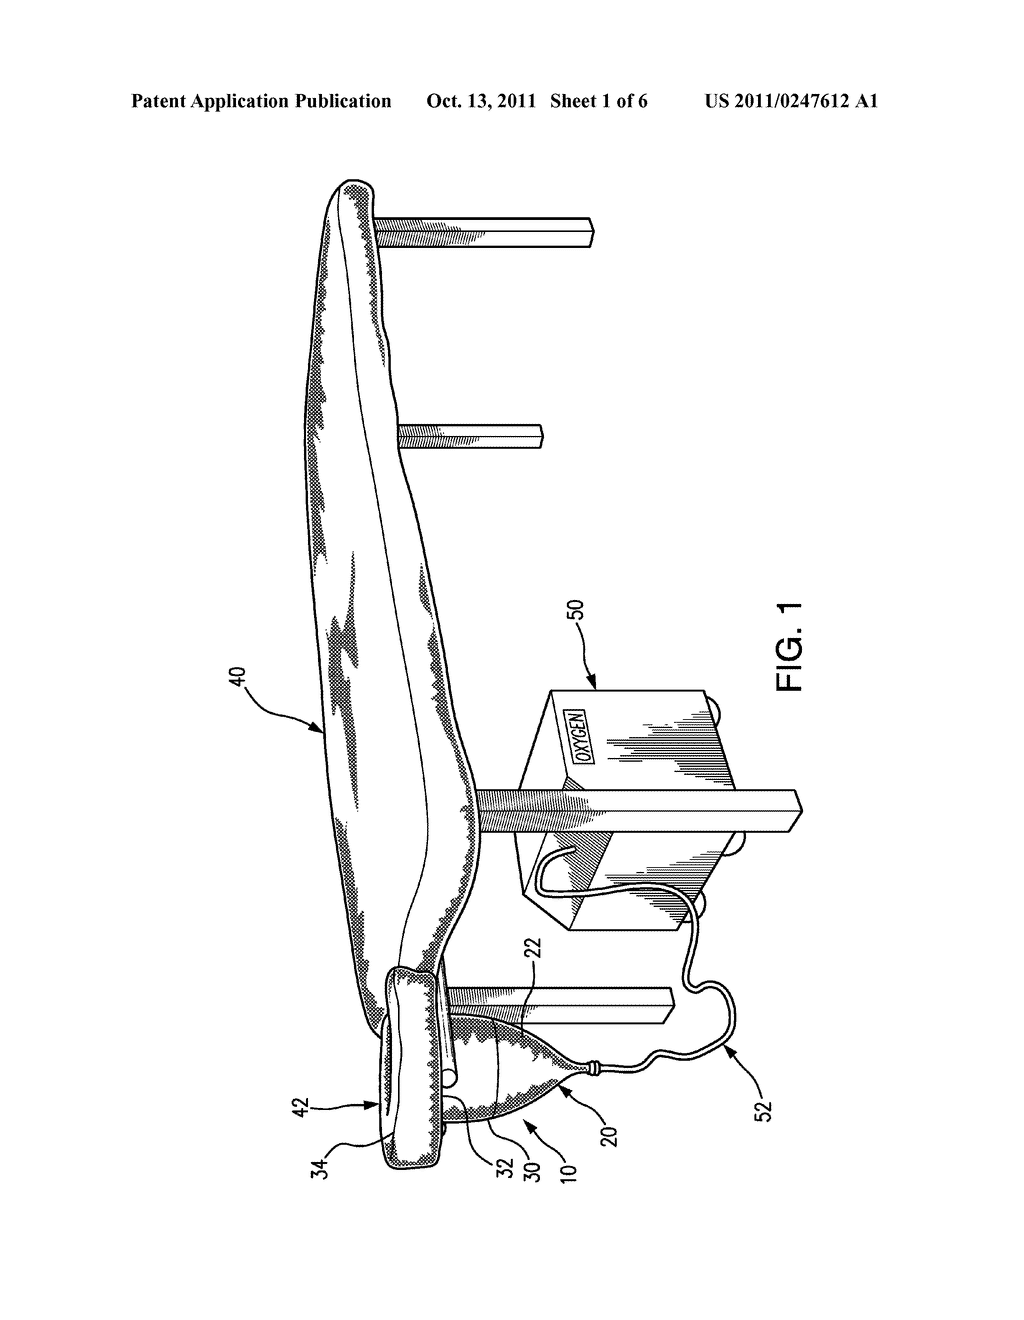 oxygen and aromatherapy delivery apparatus for a massage table